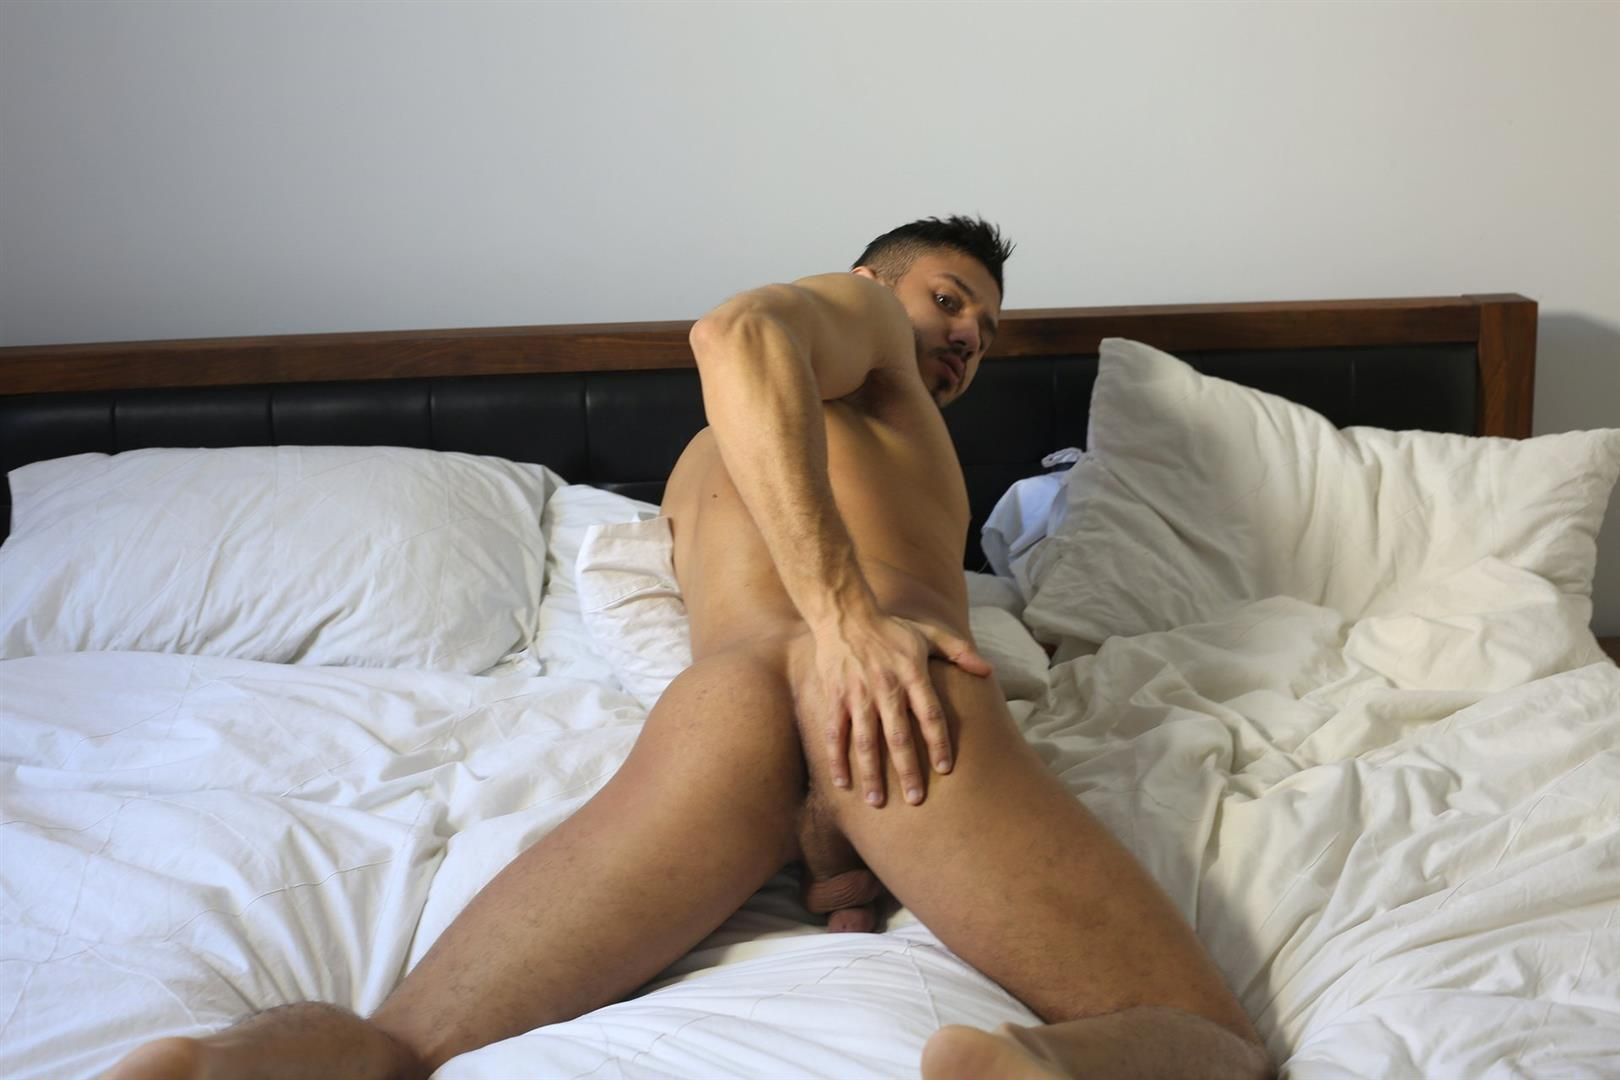 Men-of-Montreal-Malik-Big-Arab-Cock-At-The-Stock-Bar-Pictures-Amateur-Gay-Porn-15 Young Naked Moroccan Man Jerks His Big Arab Cock